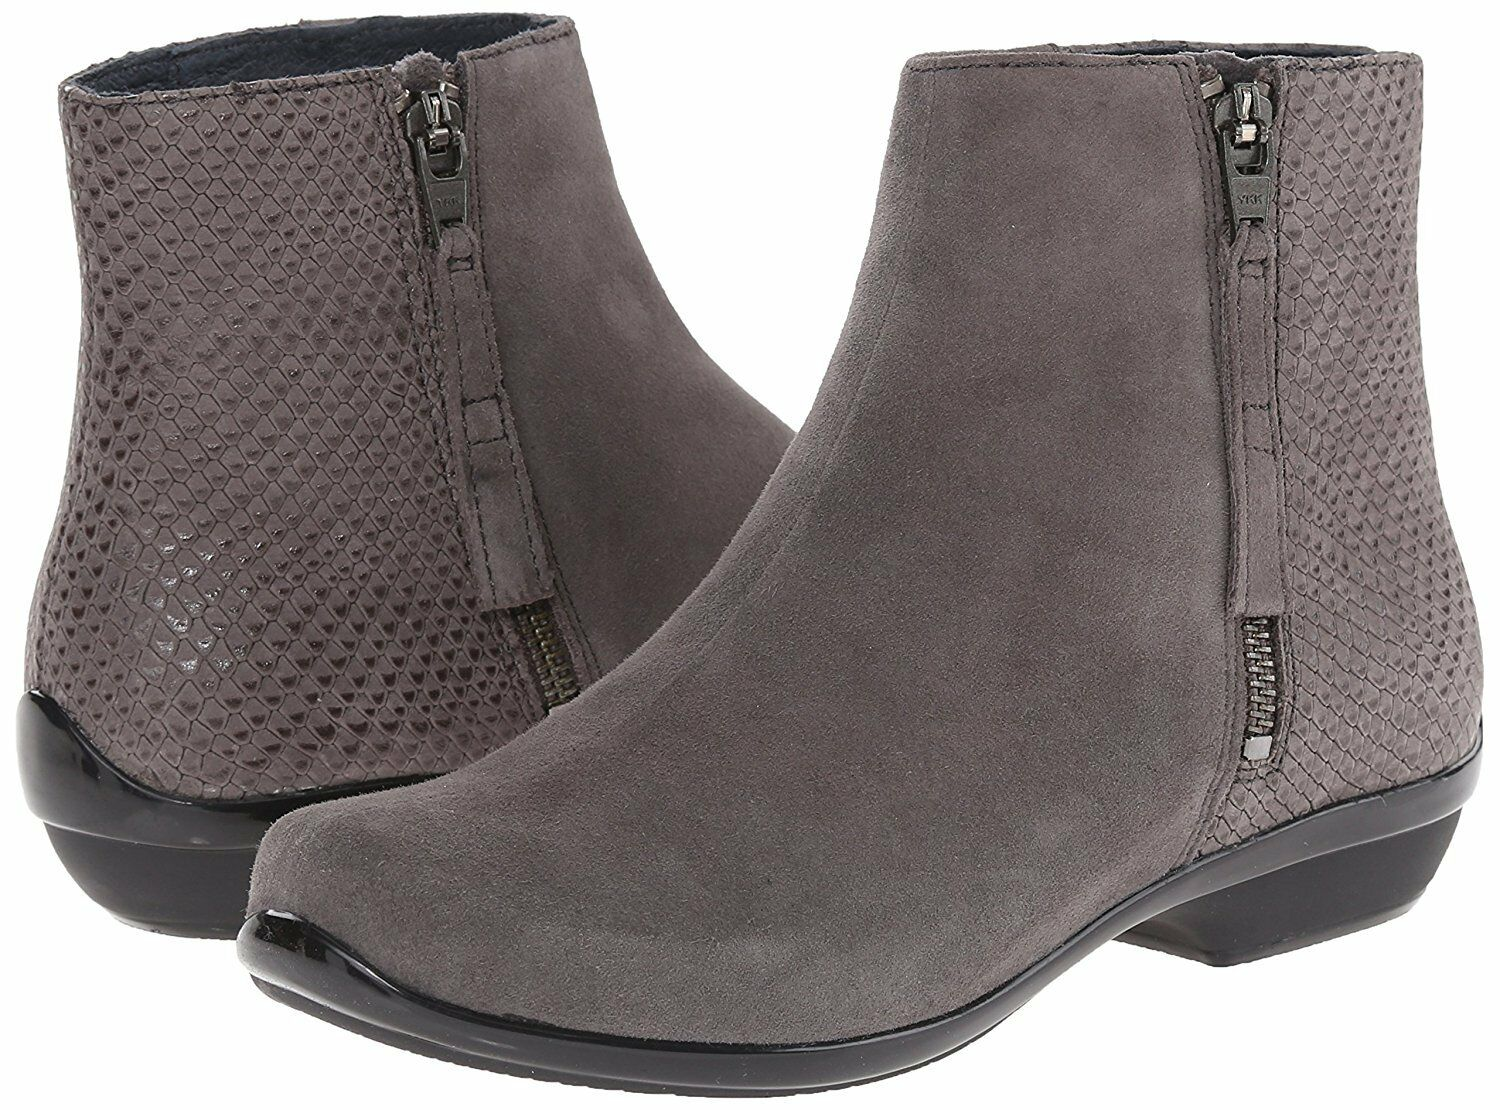 NEU DANSKO WOMEN'S OTIS ZIPPER ANKLE BOOTS GREY KID SUEDE Größe 38  170